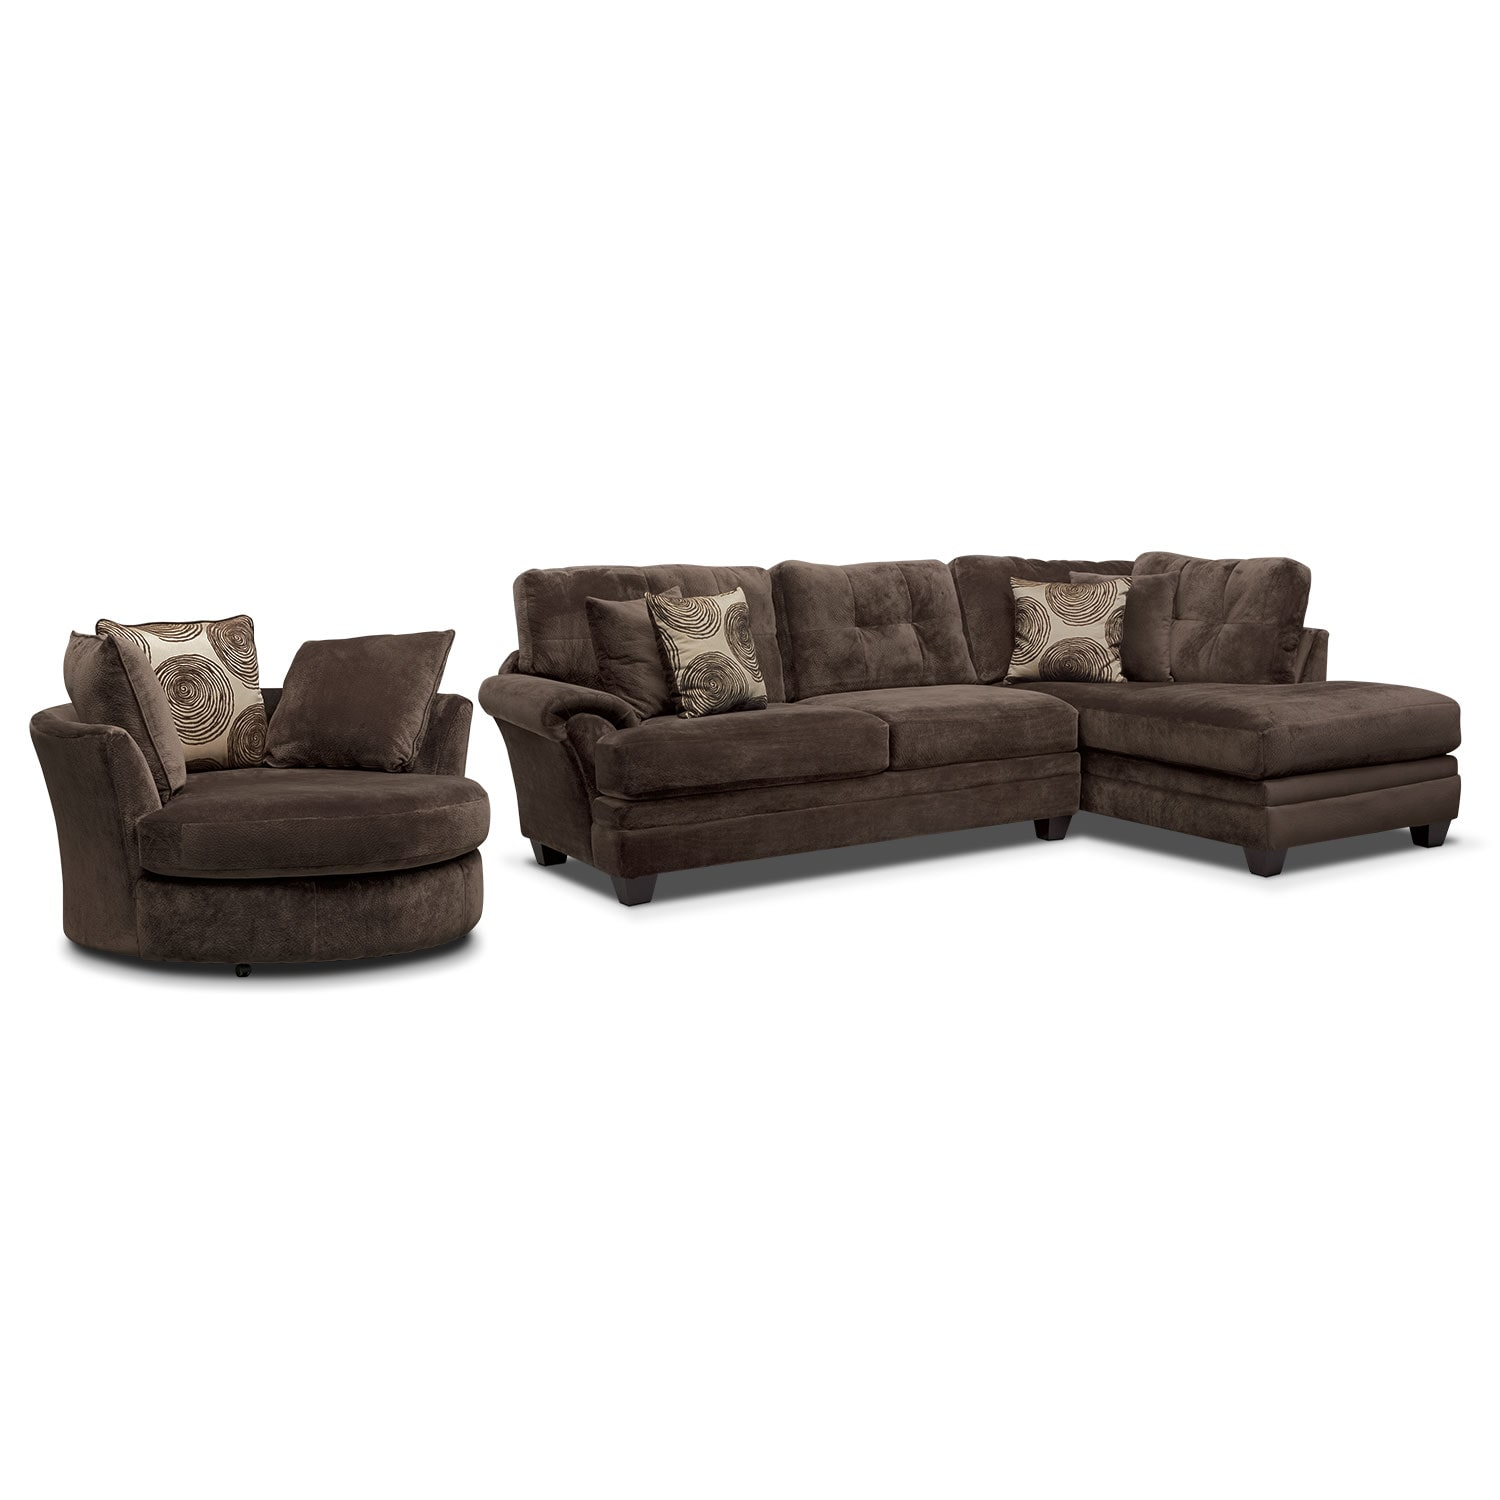 Cordelle 2Piece RightFacing Chaise Sectional  Chocolate